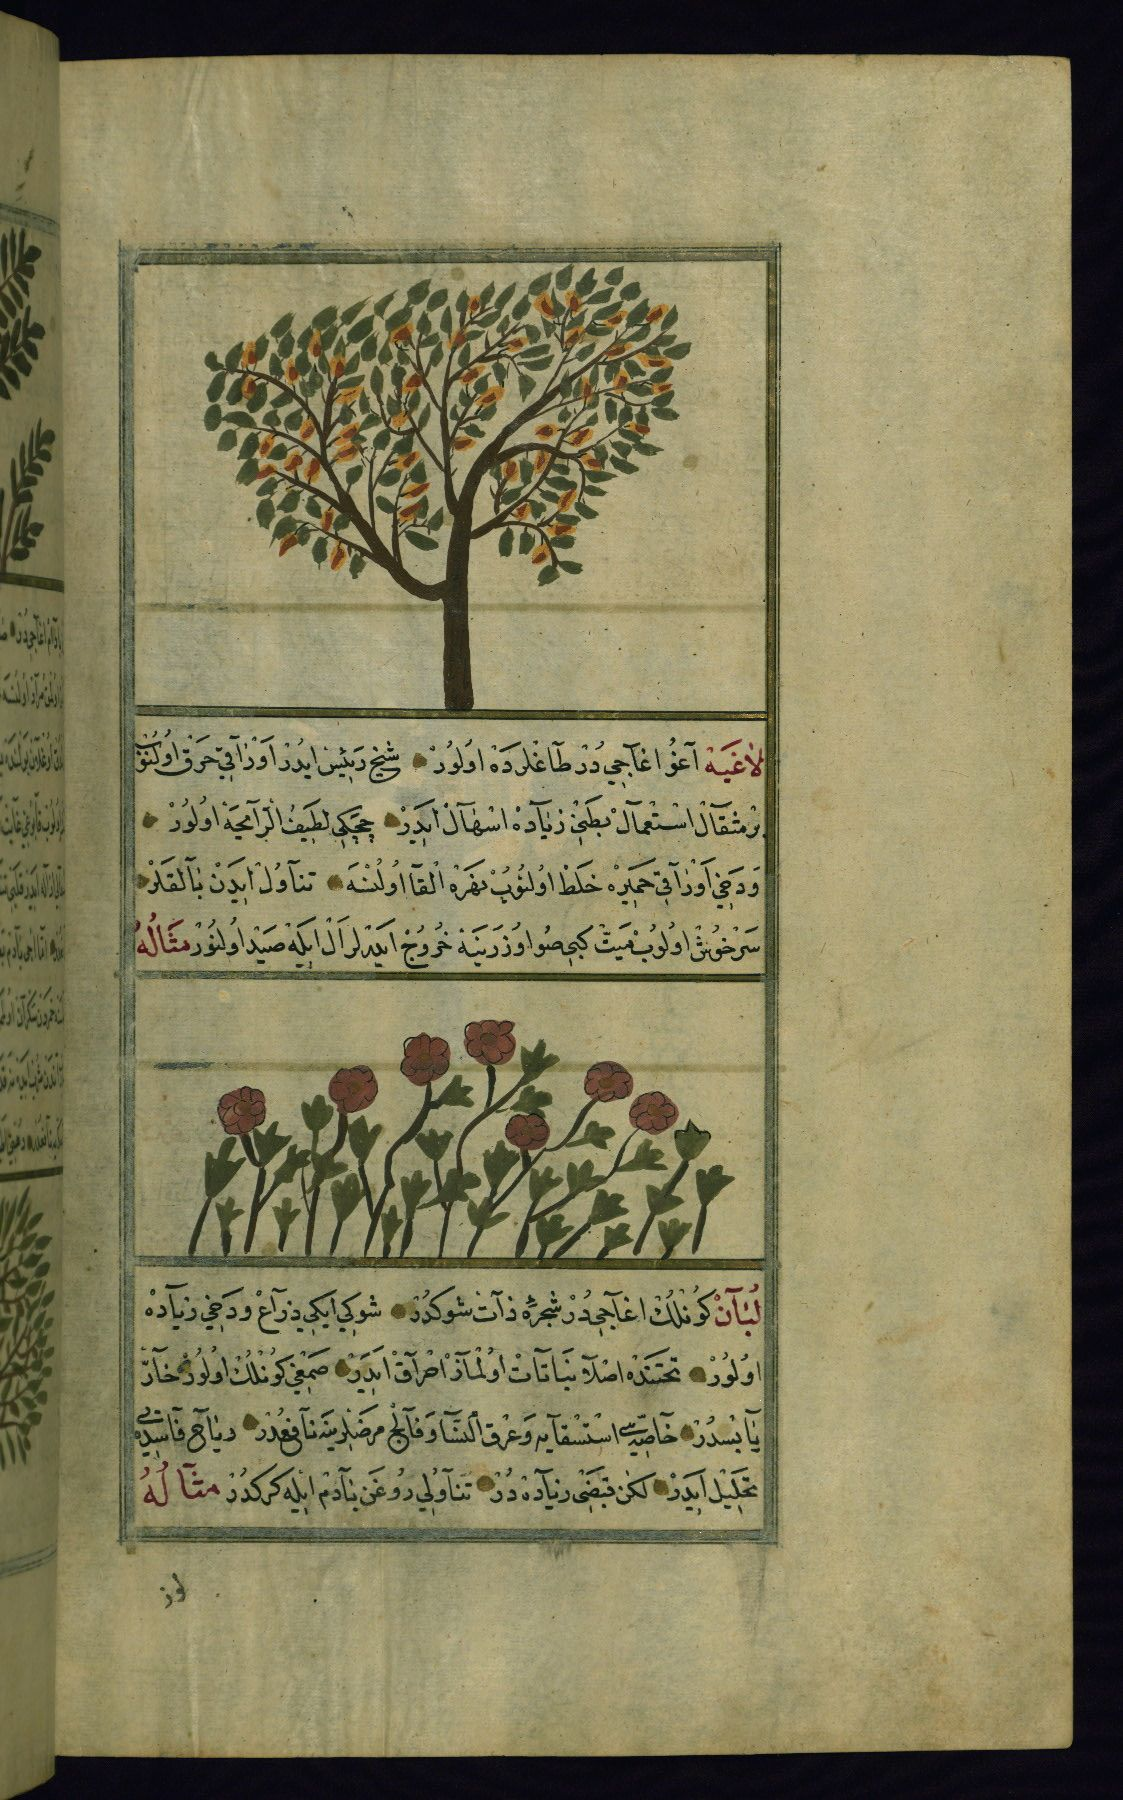 These illustrations depict a pear tree (kummathrā) and lāghiyah plants (perhaps lāʿiyah or Irish spurge).Wonders of Creation by Qazwīnī 1293 was translated to Turkish in 1717  completed by Rūzmah-ʾi Nāthānī - W659